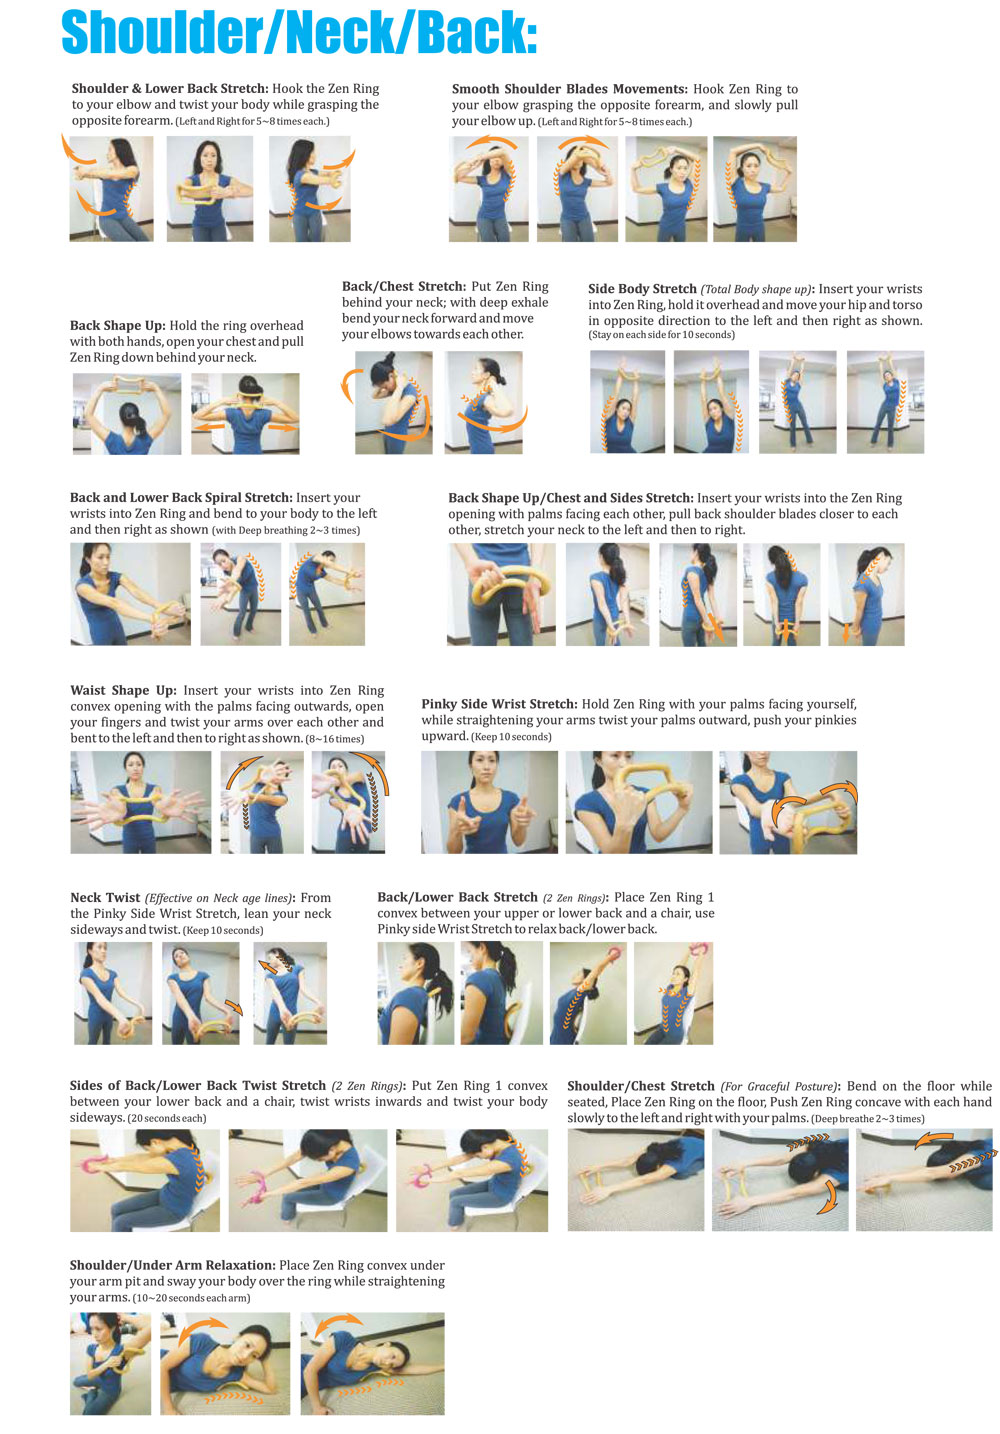 Health For Nerds On Pinterest Yoga Back Pain Exercises